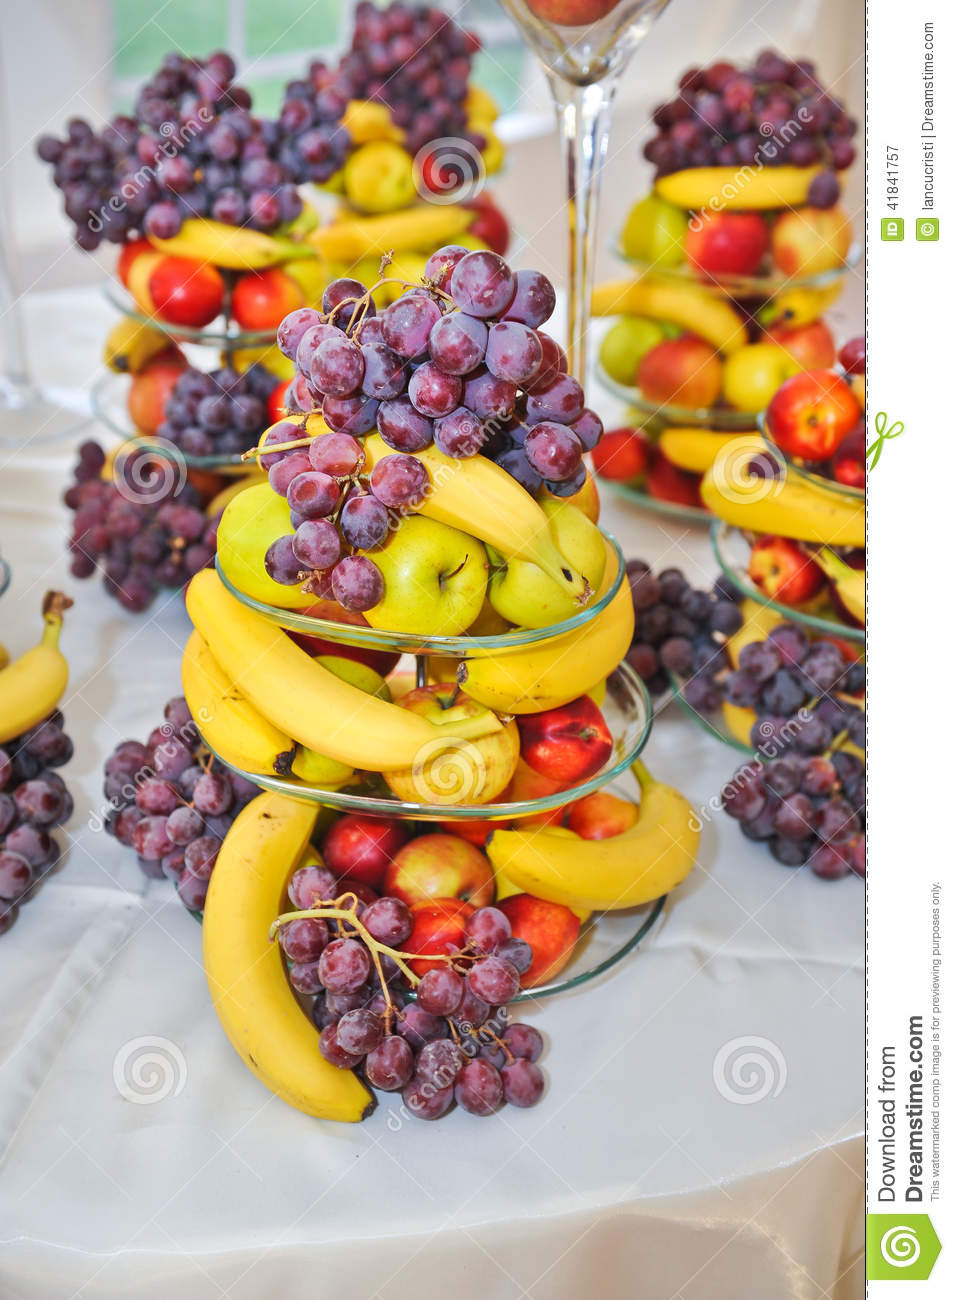 Apples Decoration Of Wedding Decoration With Fruits Bananas Grapes And Apples